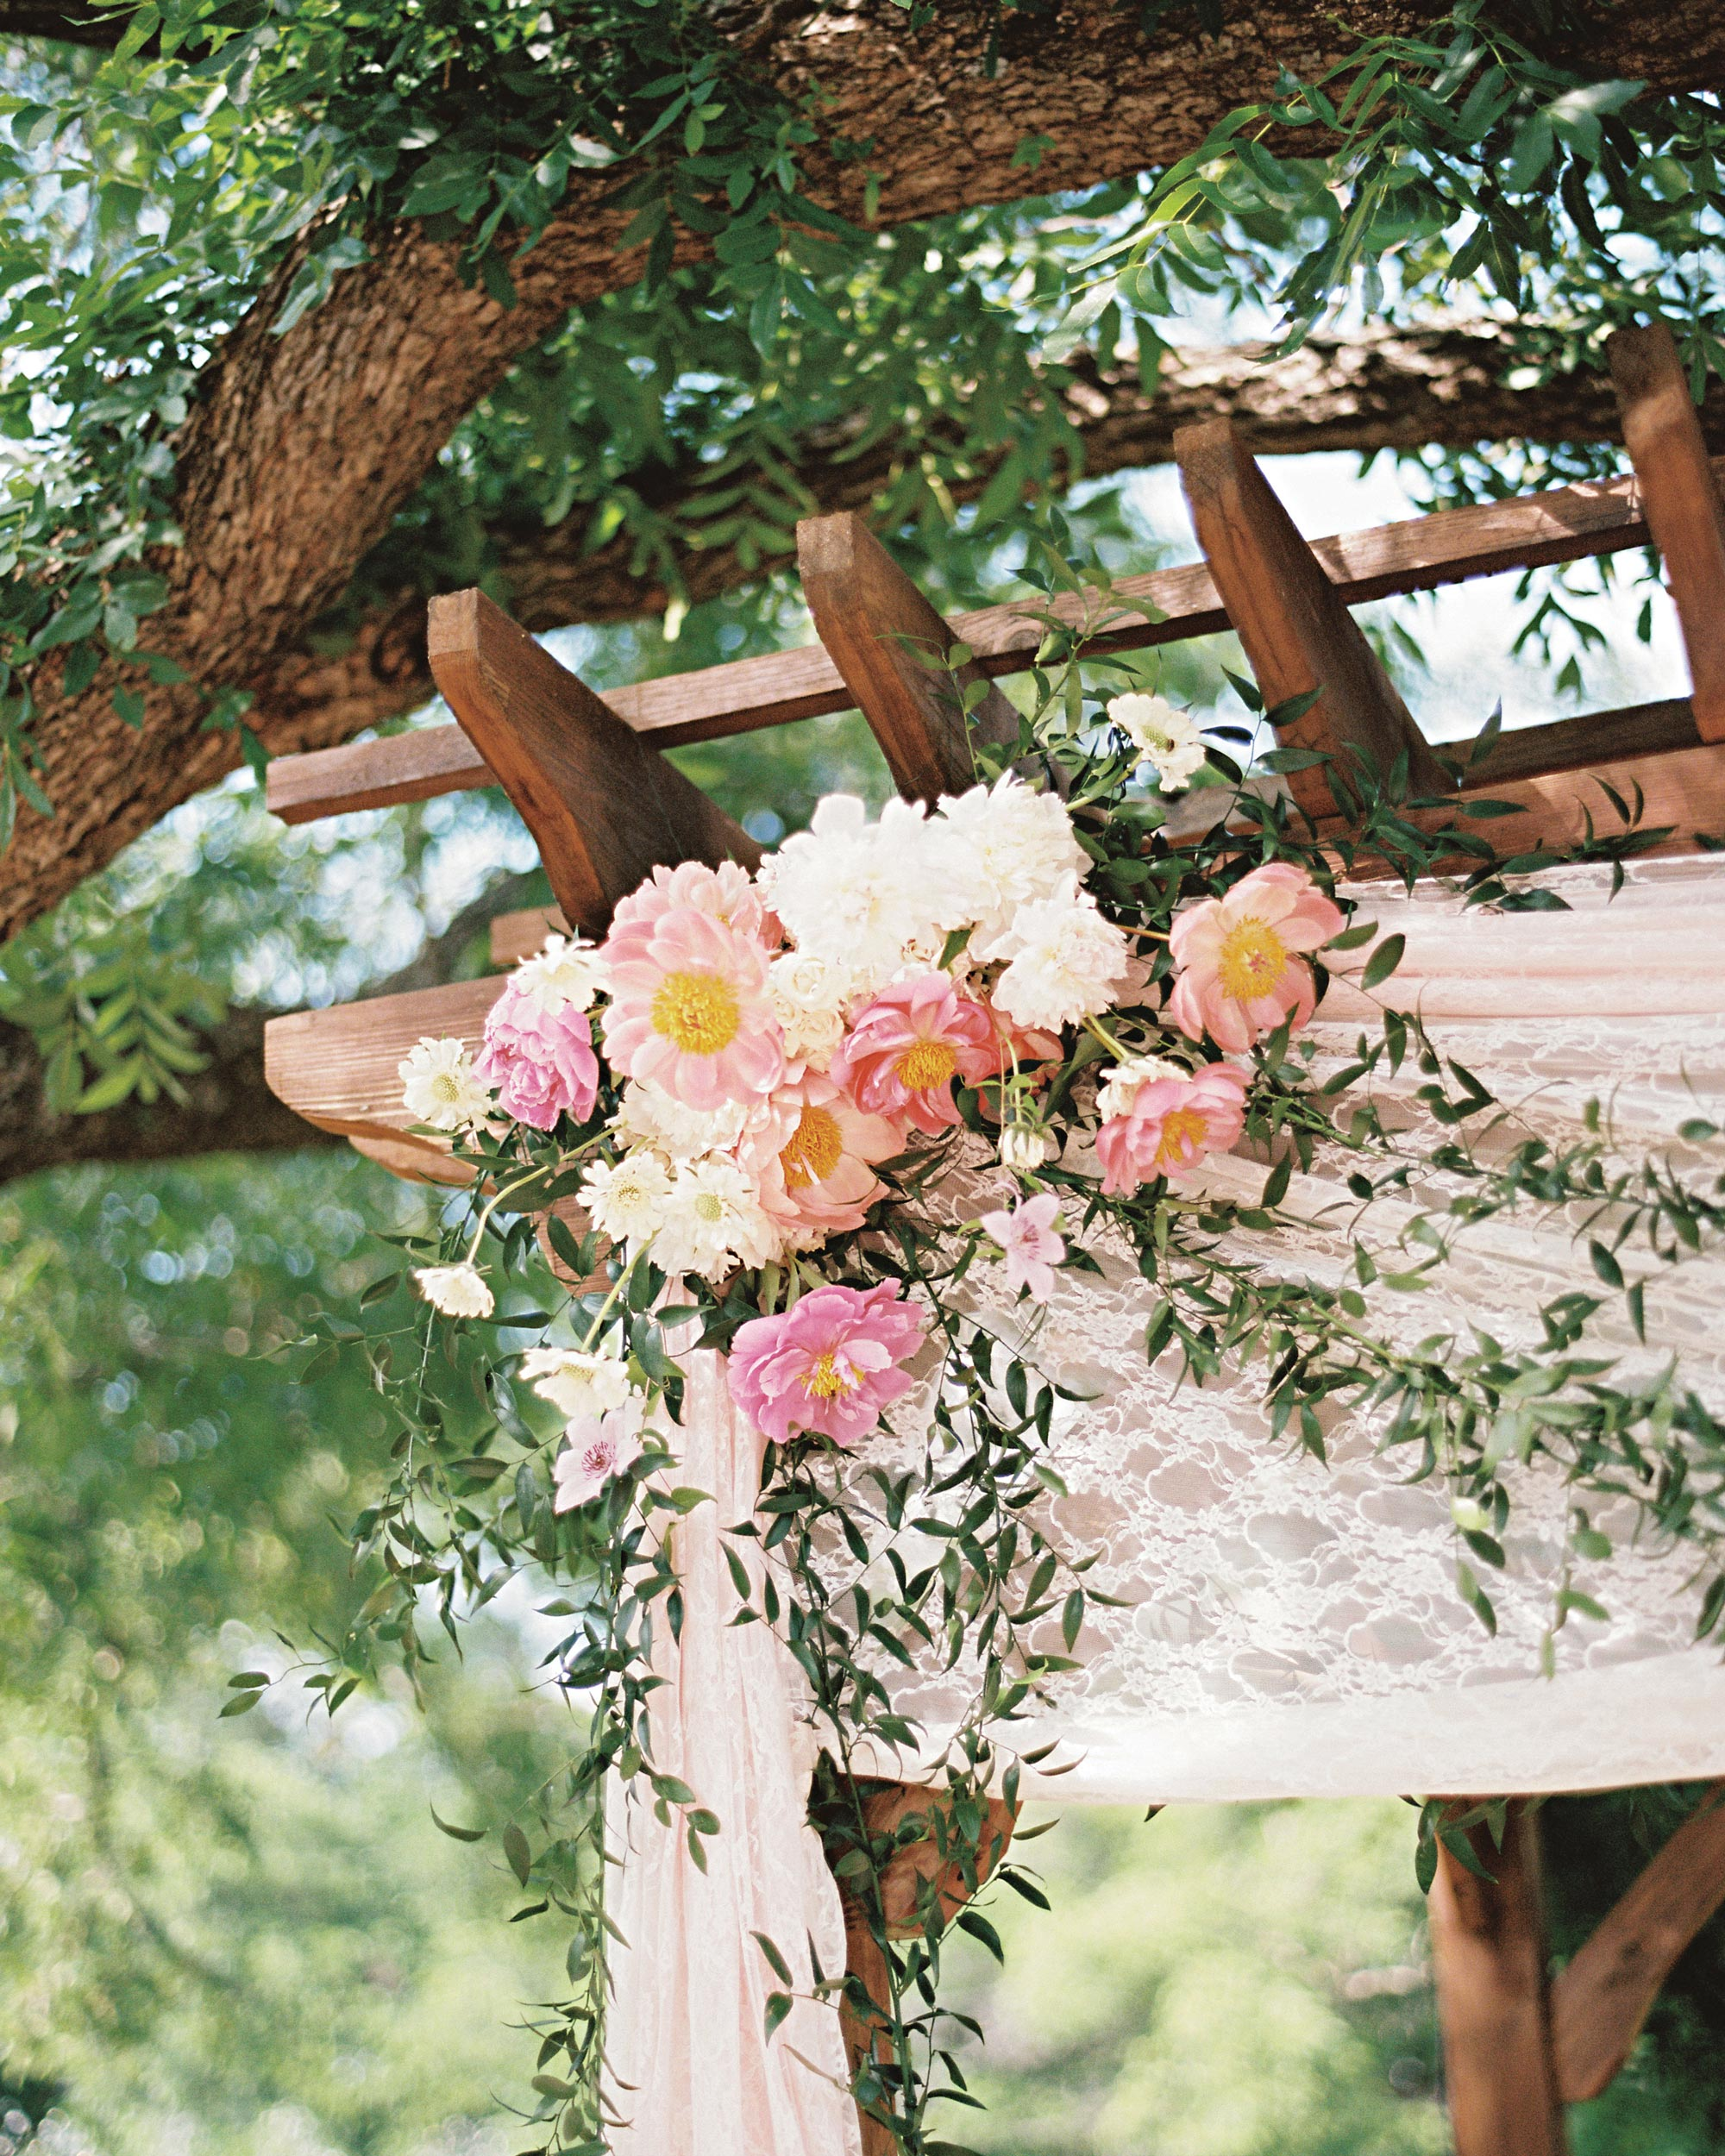 david-tyler-real-wedding-ceremony-arch-with-flowers.jpg